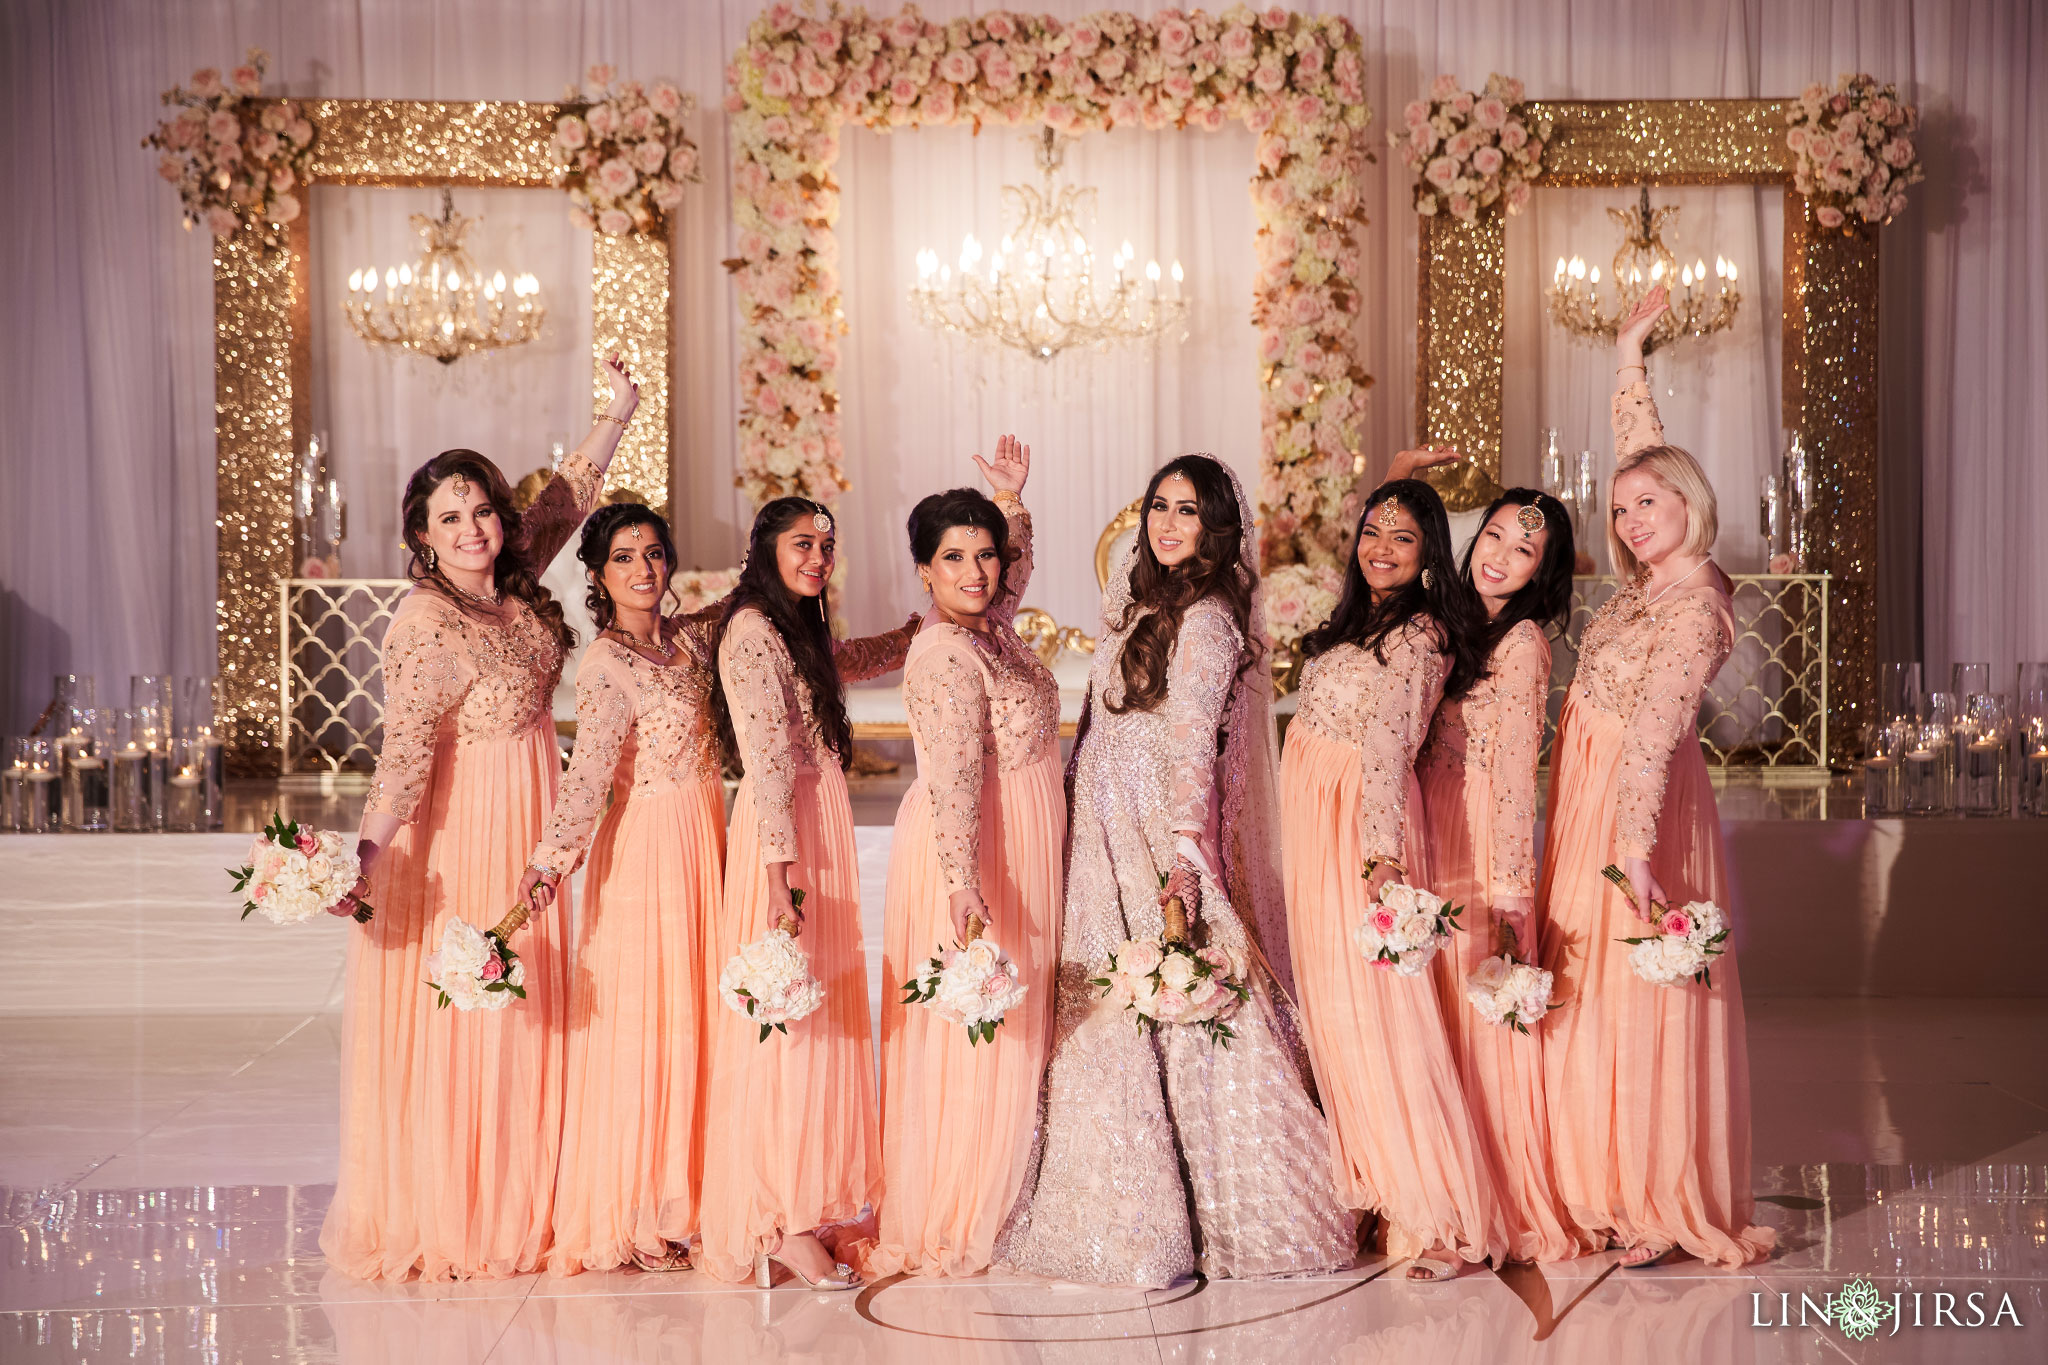 31 pasea hotel spa huntington beach pakistani muslim wedding photography